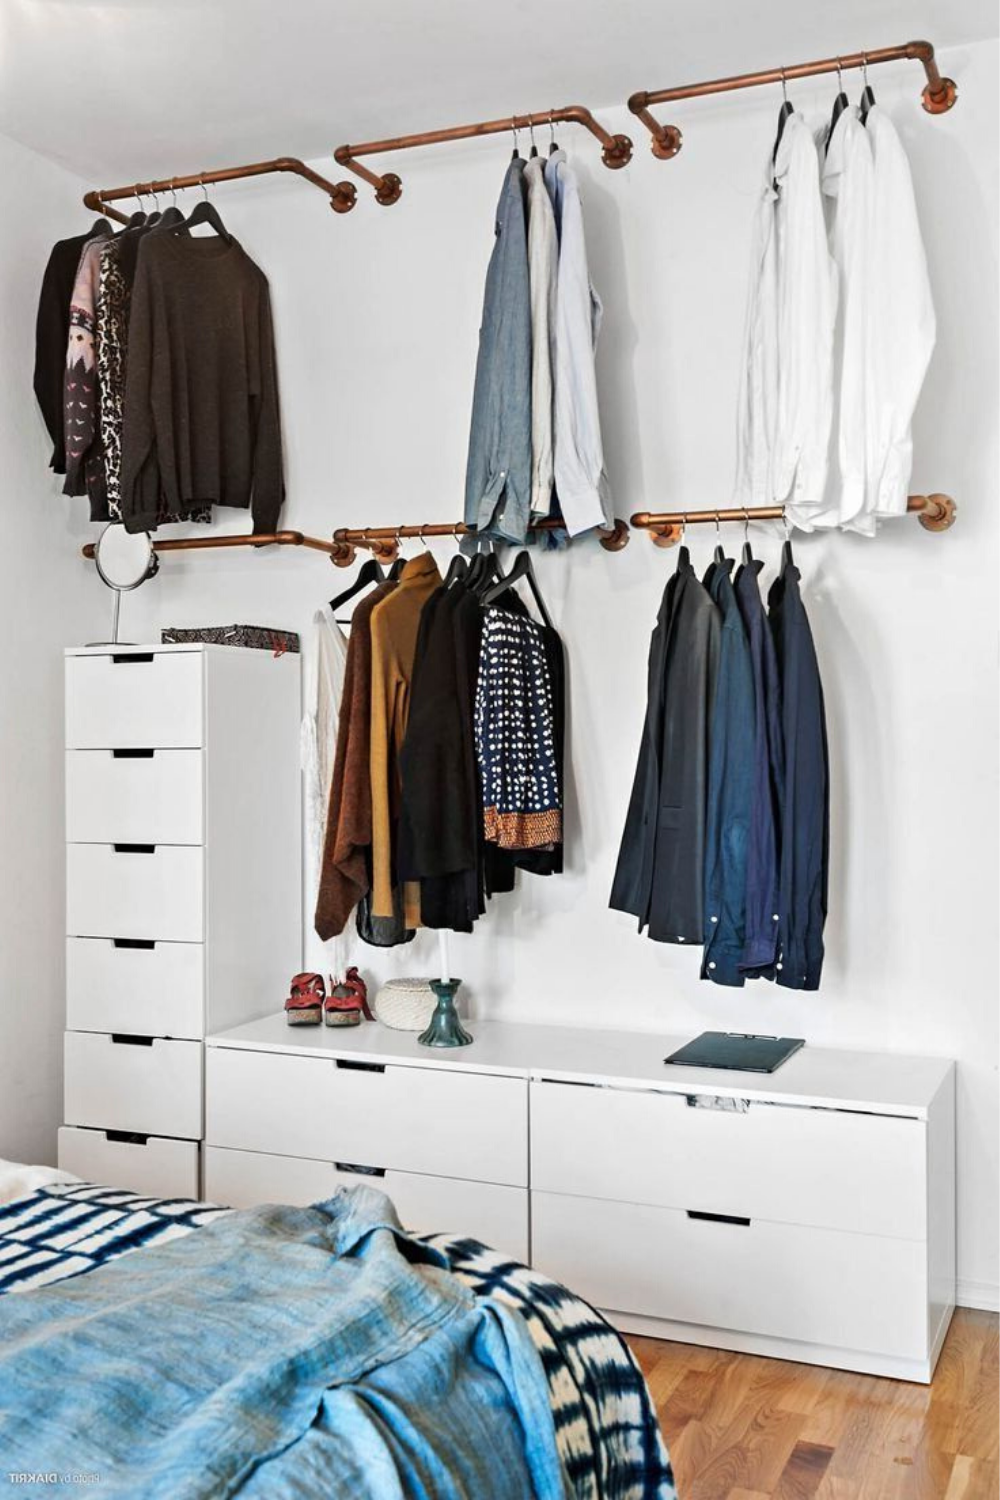 Clothing Storage Ideas For Small Bedrooms In 2020 Small Bedroom Storage Wall Mounted Clothing Rack Clothing Rack Bedroom